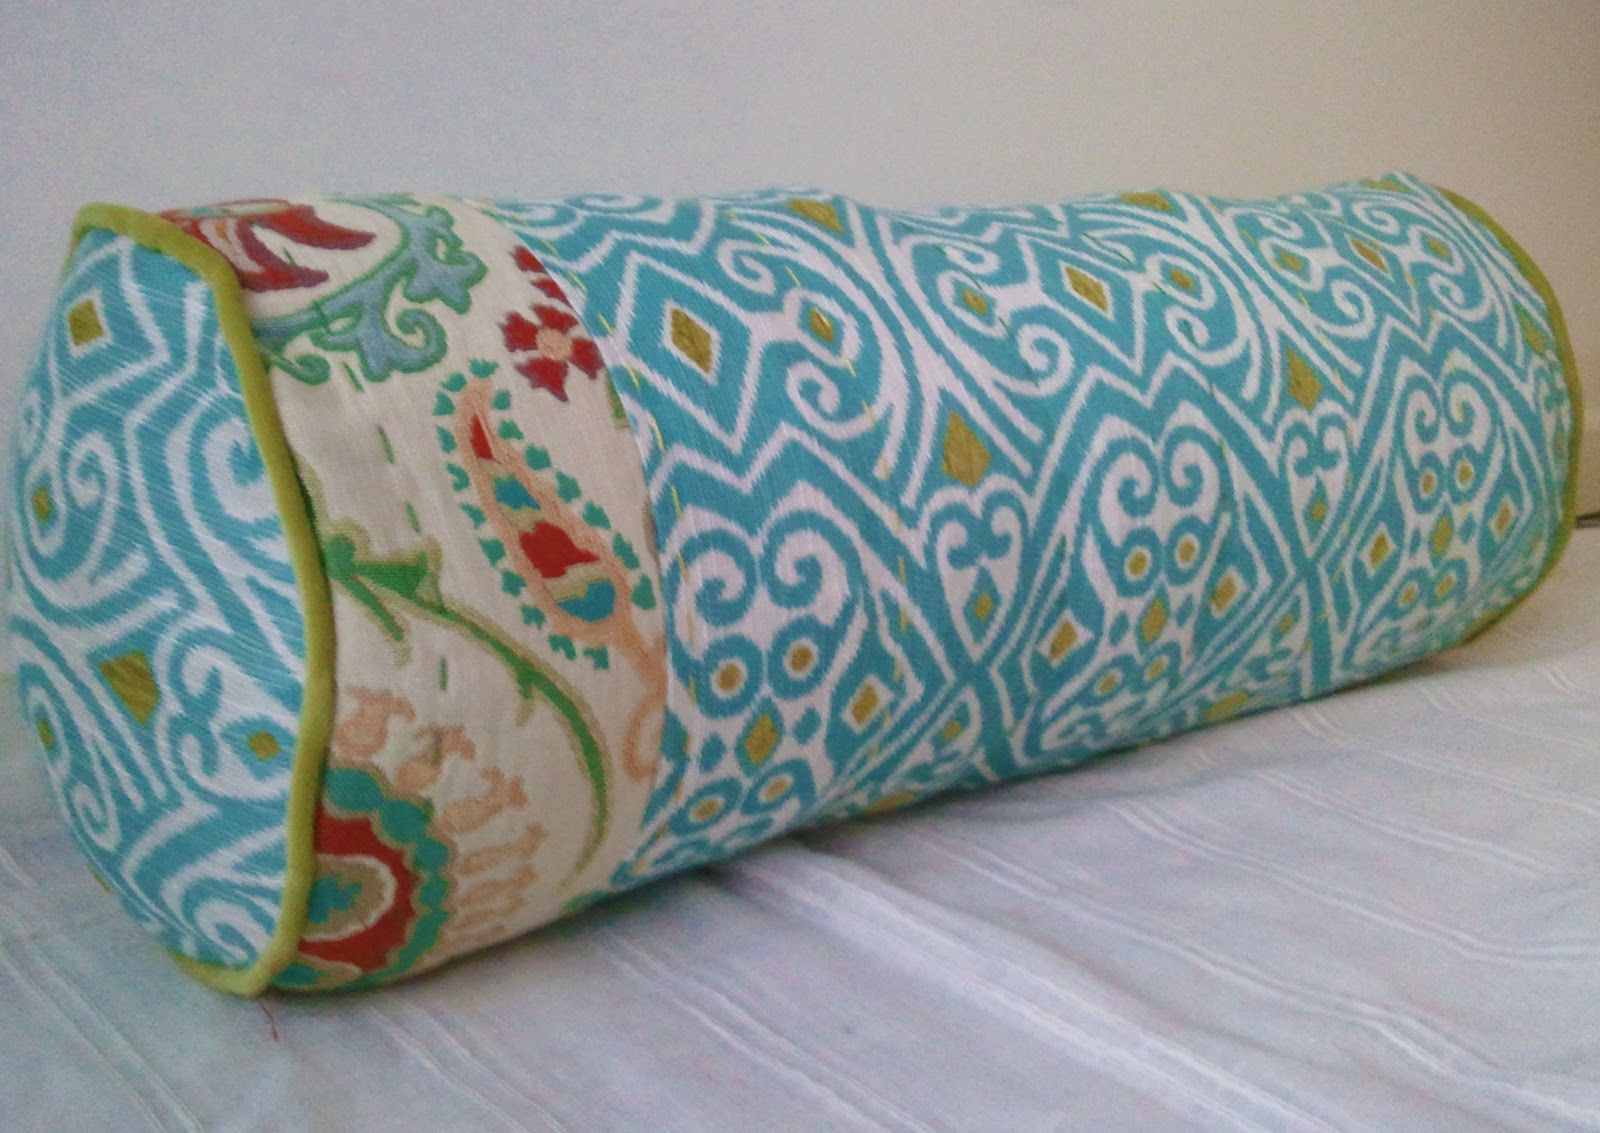 Sew Homegrown: DIY Anthropologie-inspired Bolster Pillow - I am going to use this & Sew Homegrown: DIY Anthropologie-inspired Bolster Pillow - I am ... pillowsntoast.com